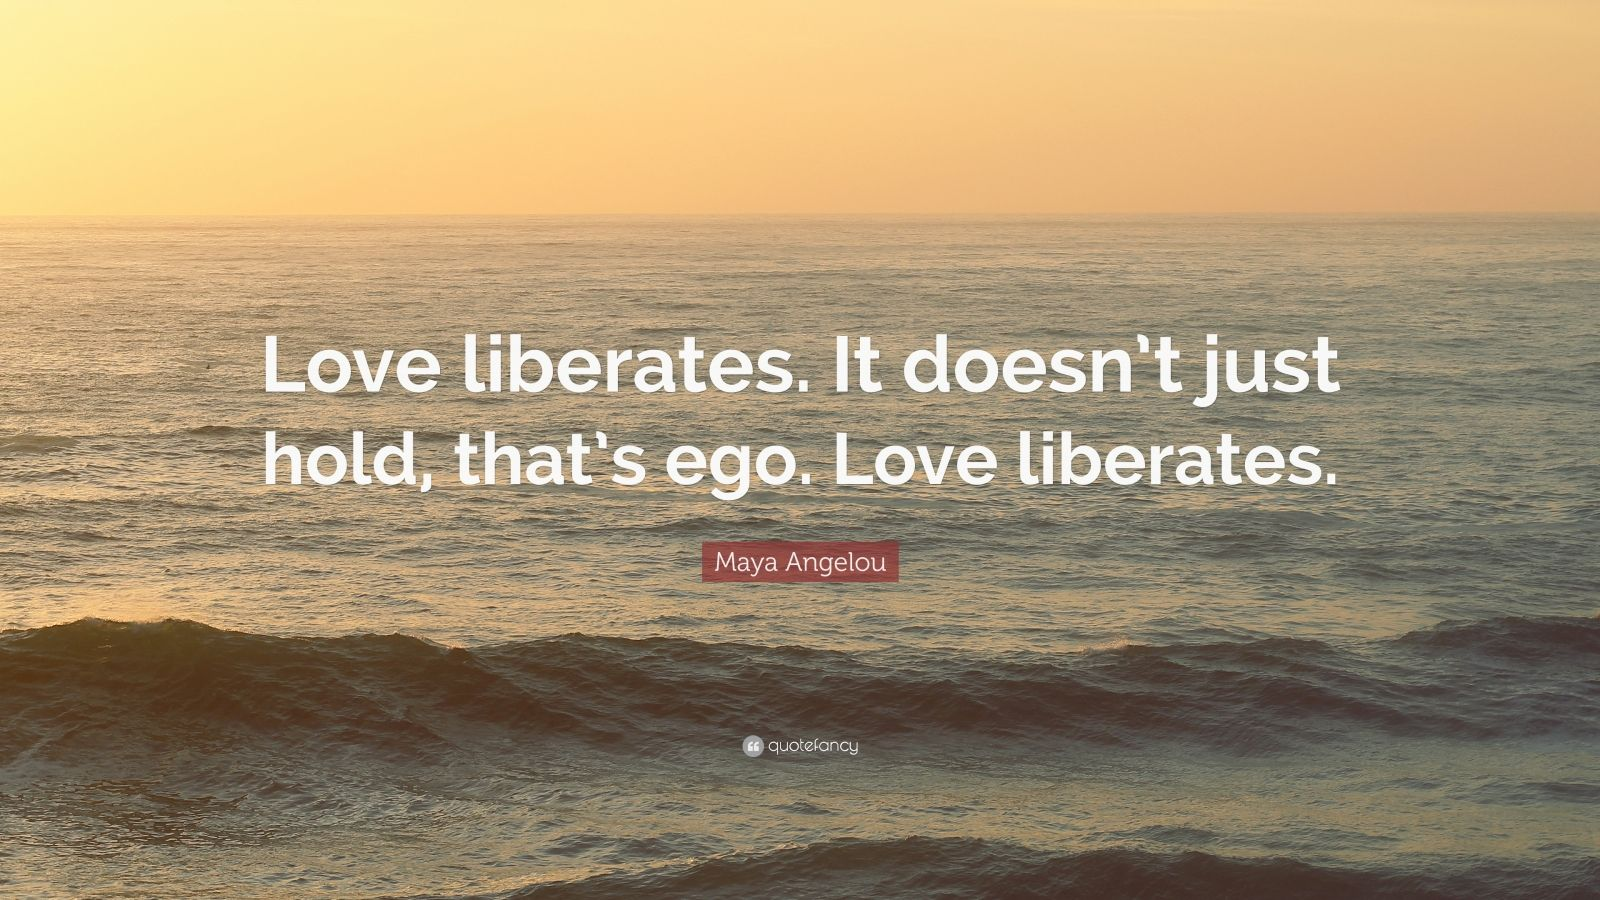 """Maya Angelou Quote: """"Love liberates. It doesn't just hold, that's ego. Love liberates."""""""